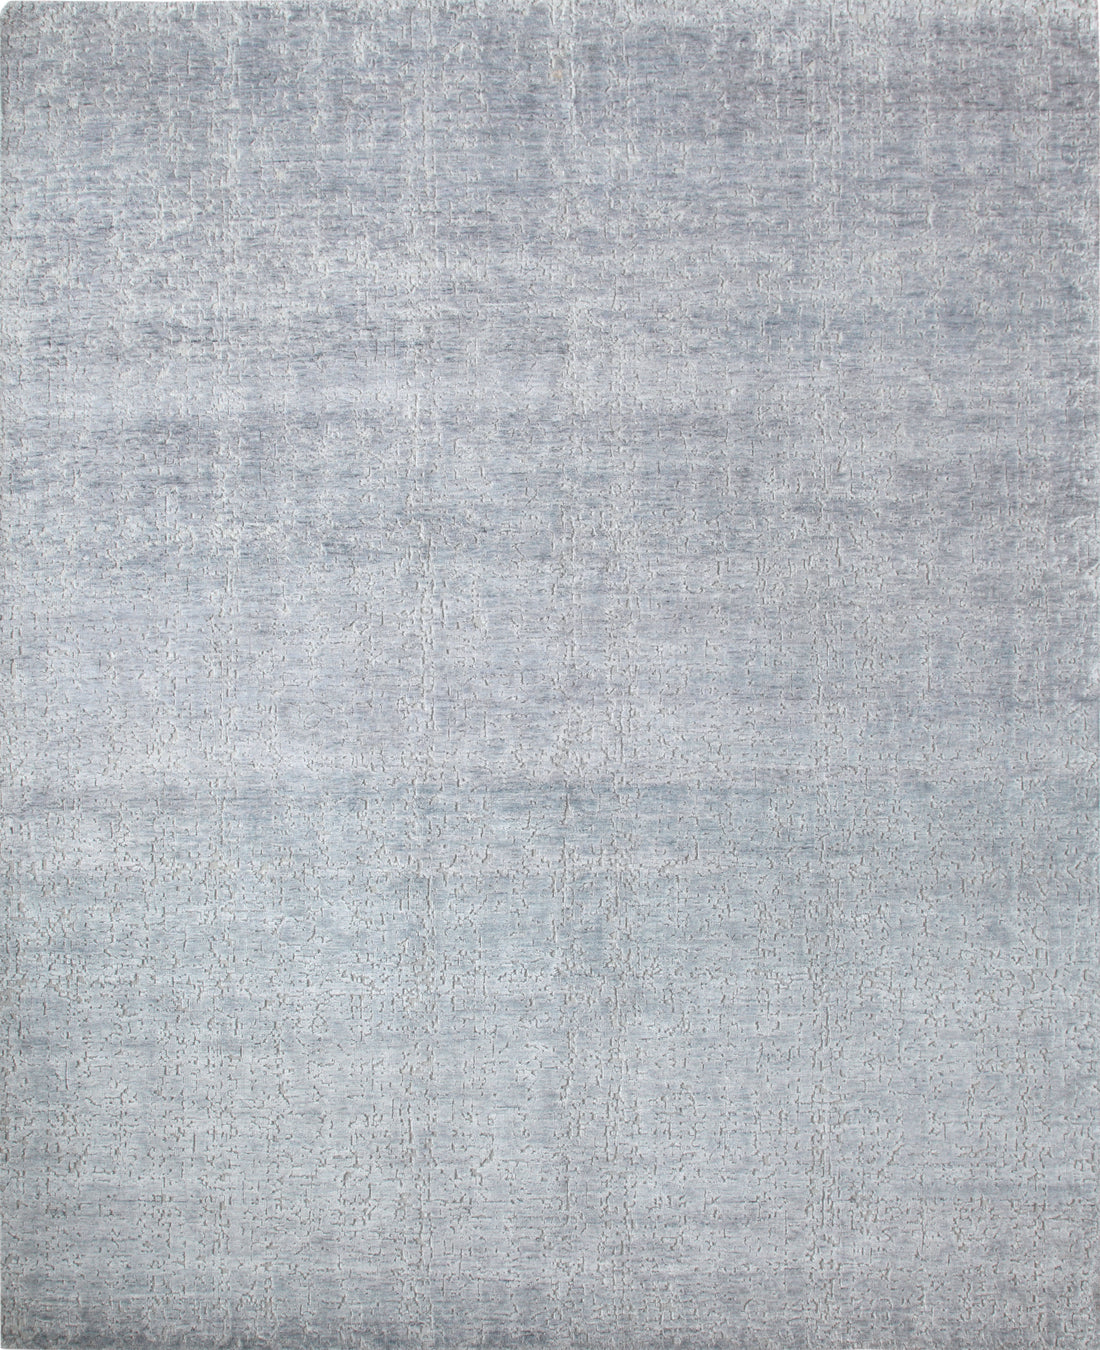 Solo Rugs Erase M8062-73 Gray Area Rug main image